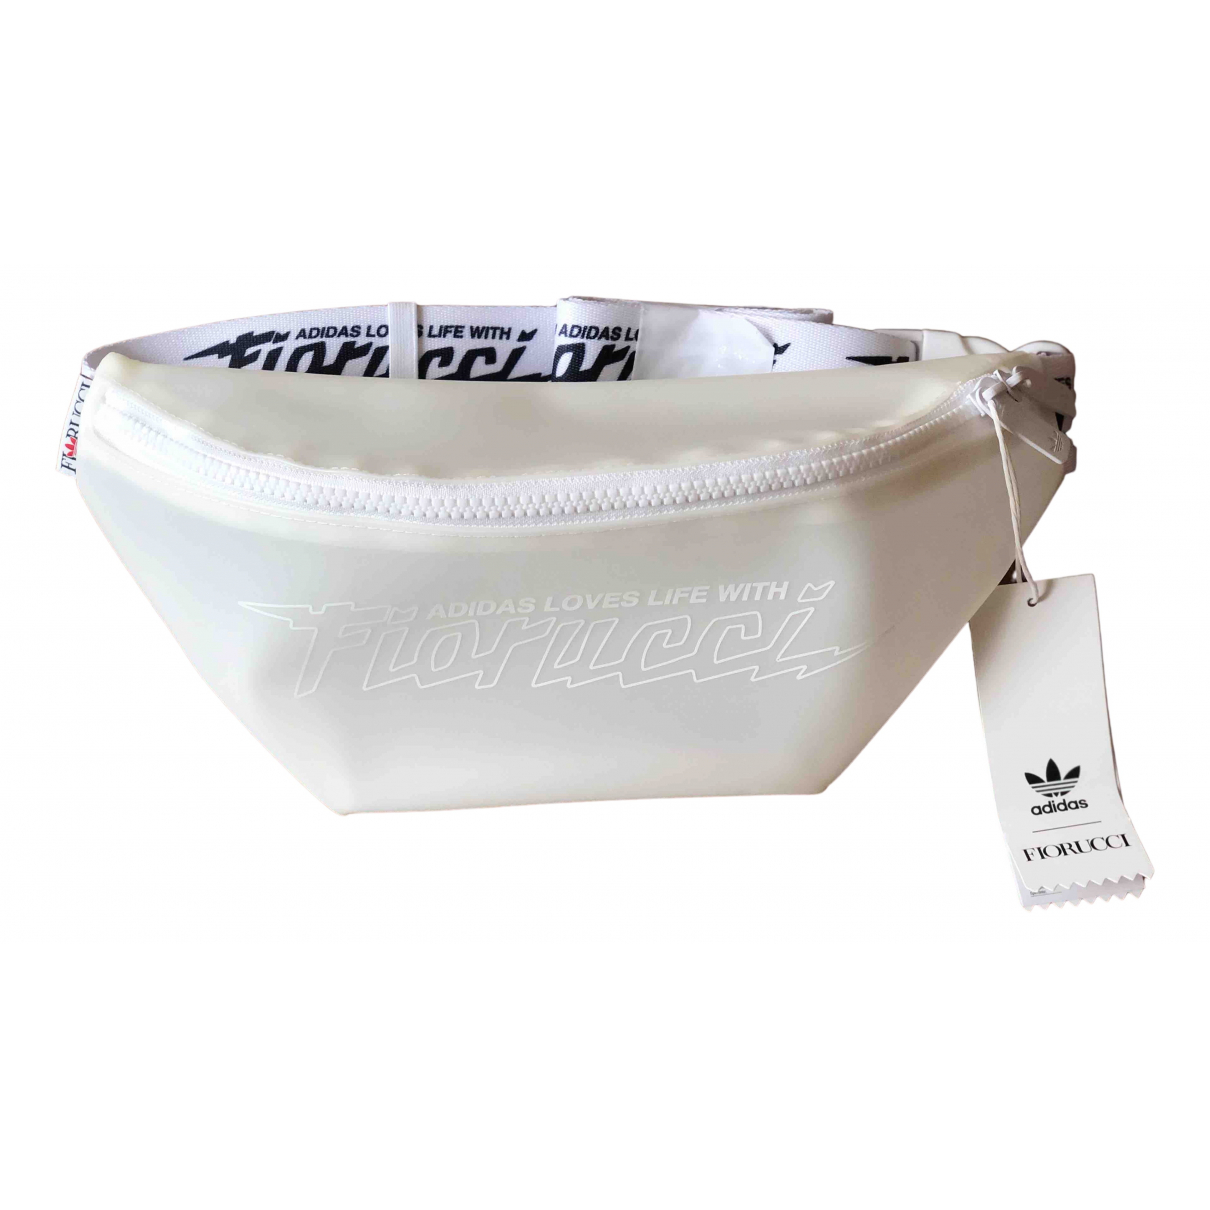 Adidas \N White Clutch bag for Women \N